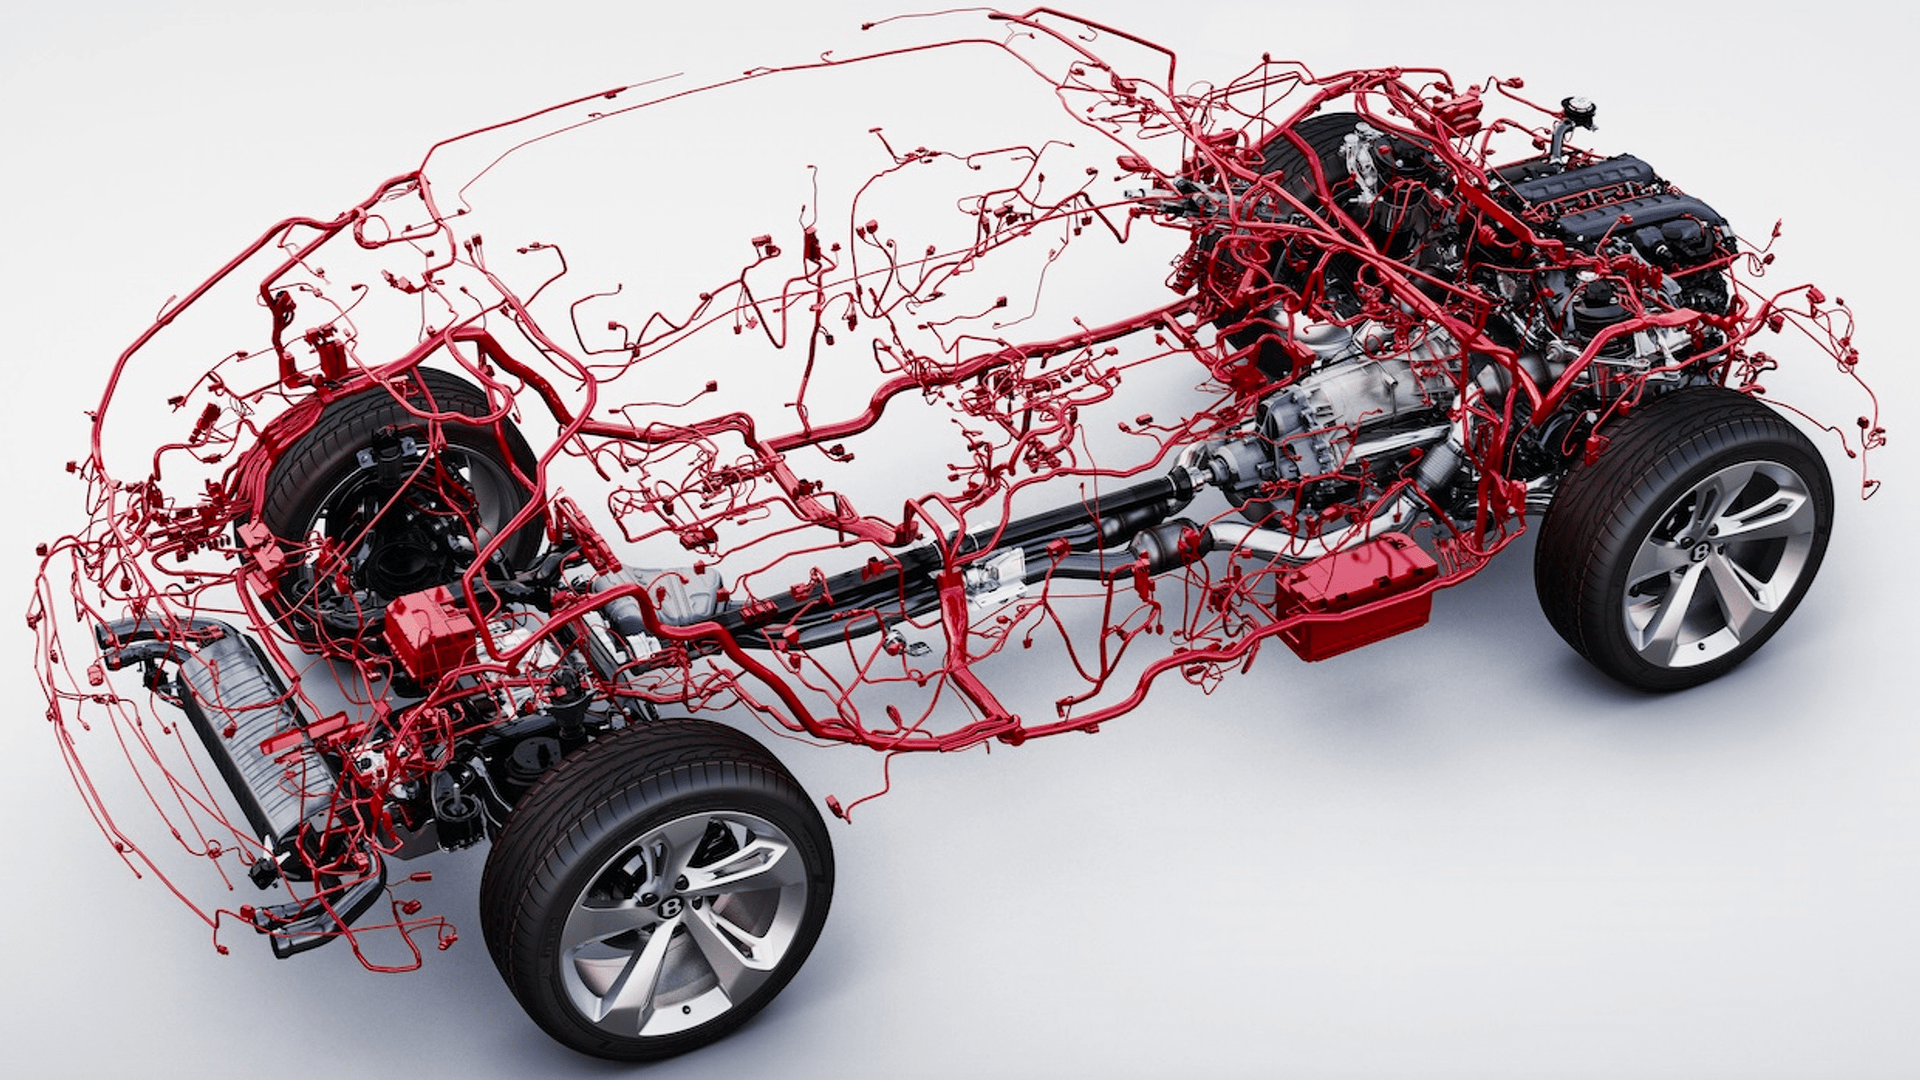 Wiring Harness Kits For Cars On Wiring Images Free Download